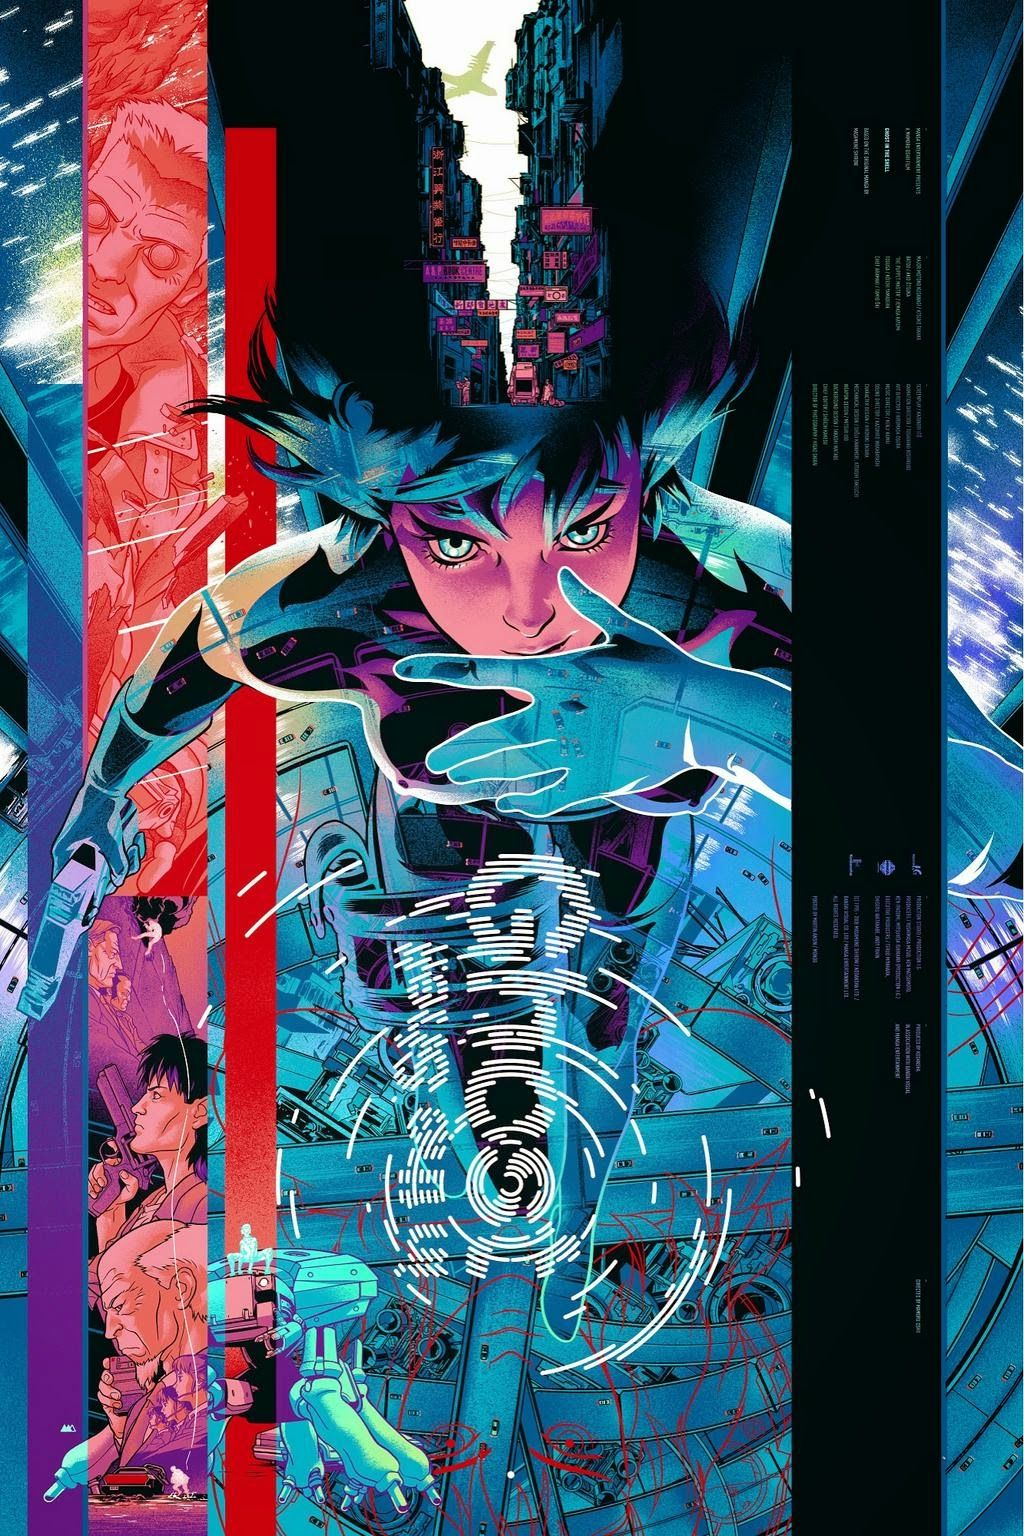 Cool Art 'Ghost In The Shell' by Martin Ansin Ghost in